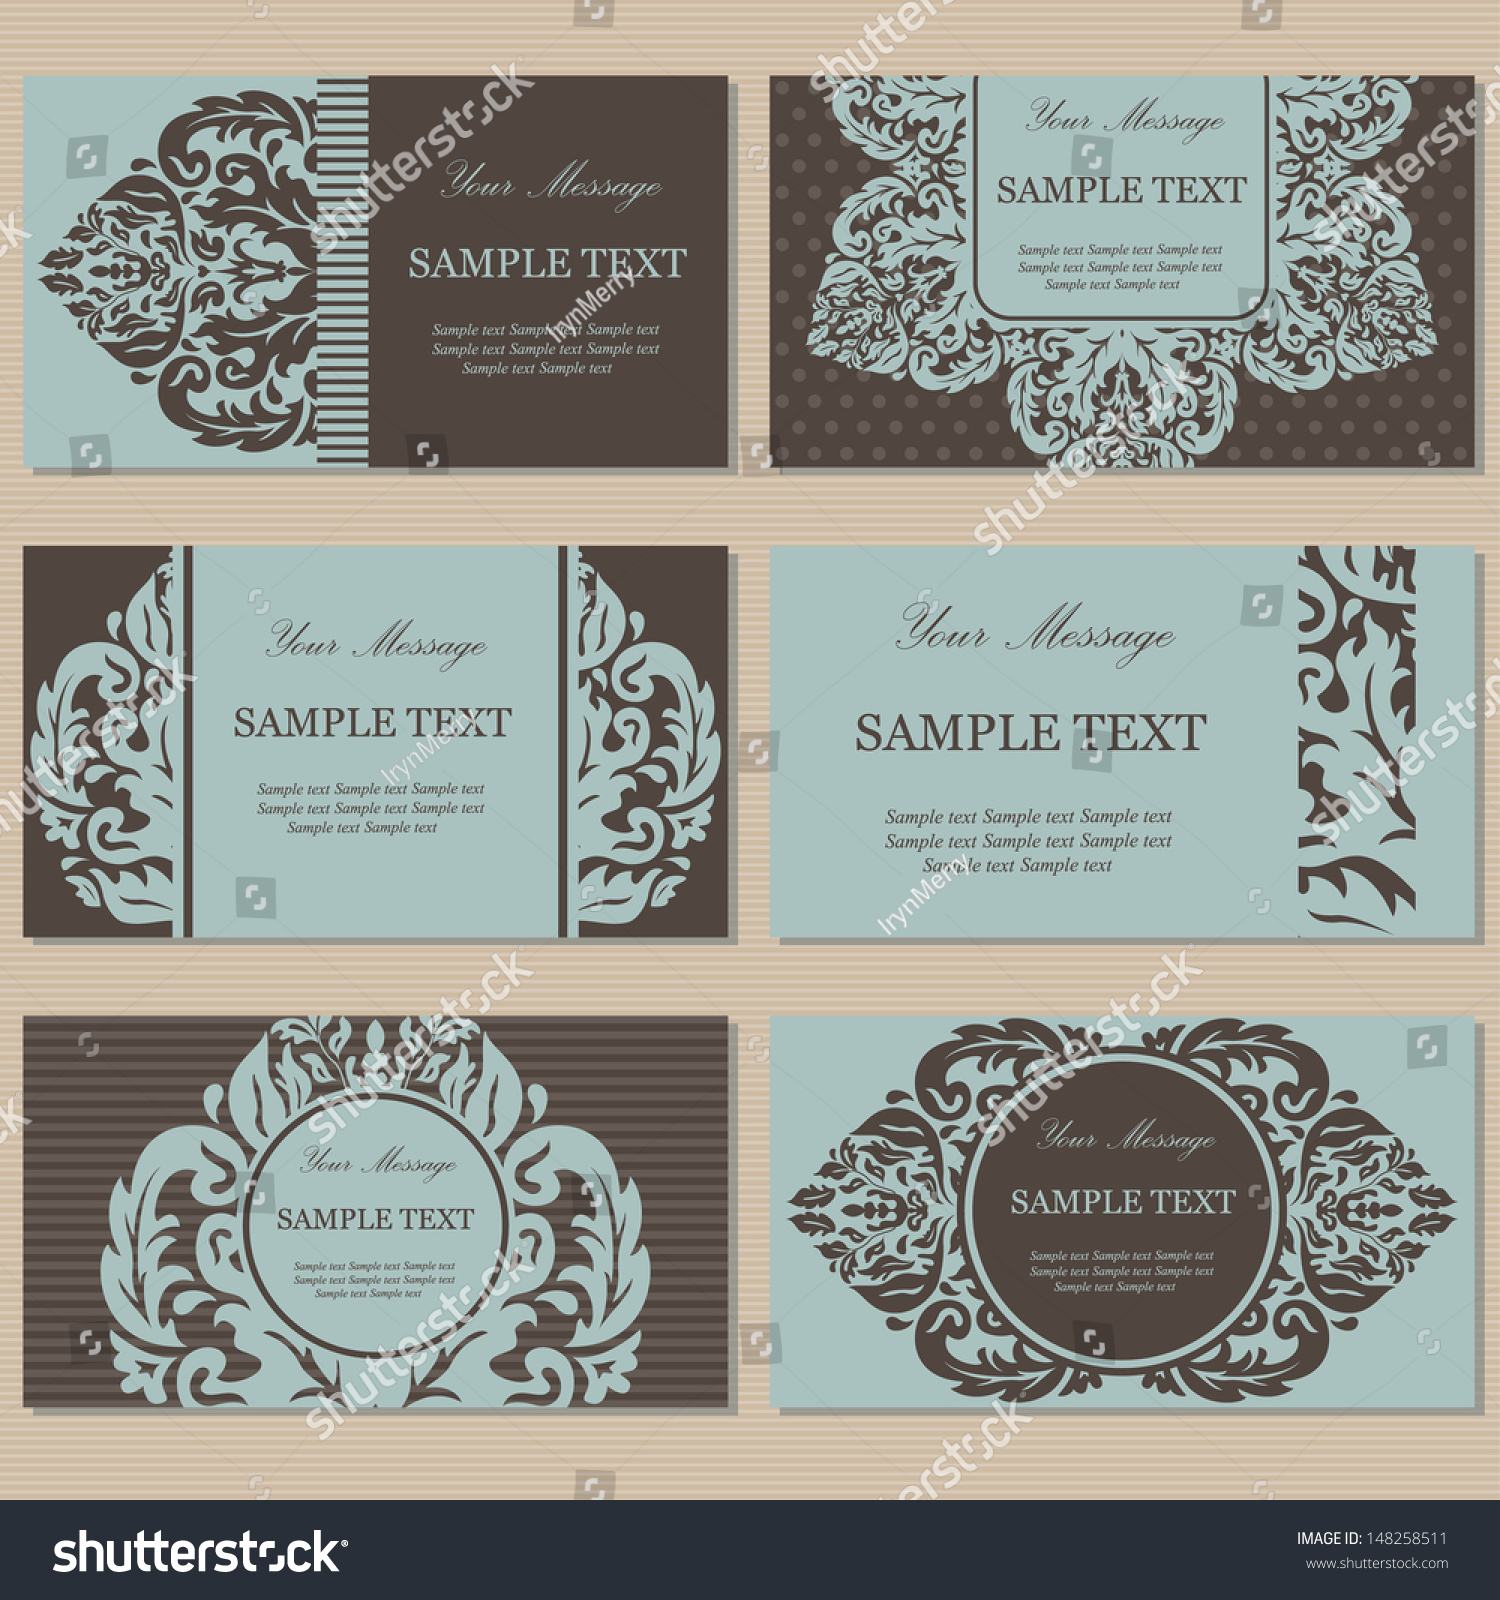 Set Six Floral Vintage Business Cards Stock Vector 148258511 ...